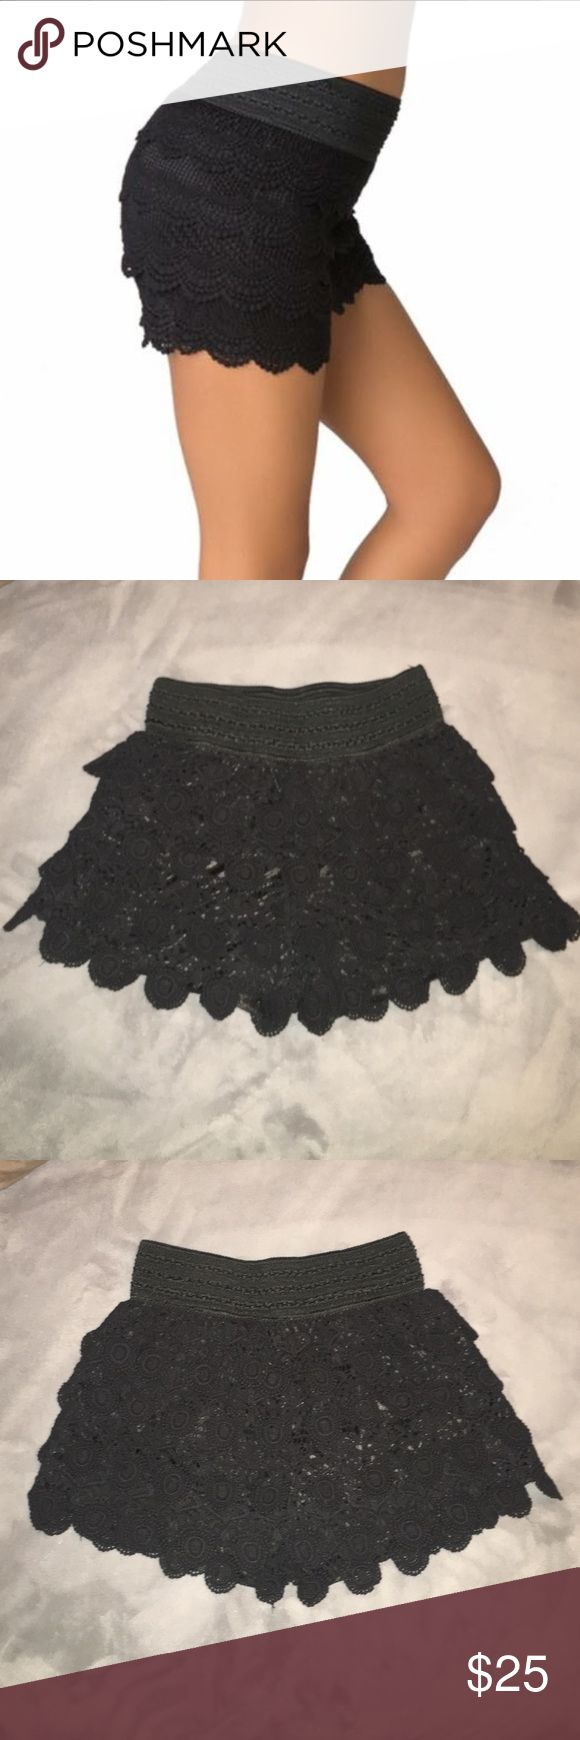 Black Crocheted Shorts Beautiful crocheted shorts in black! These shorts can be worn with boots or heels &/or lounge in your favorite flats! Original Piece Shorts